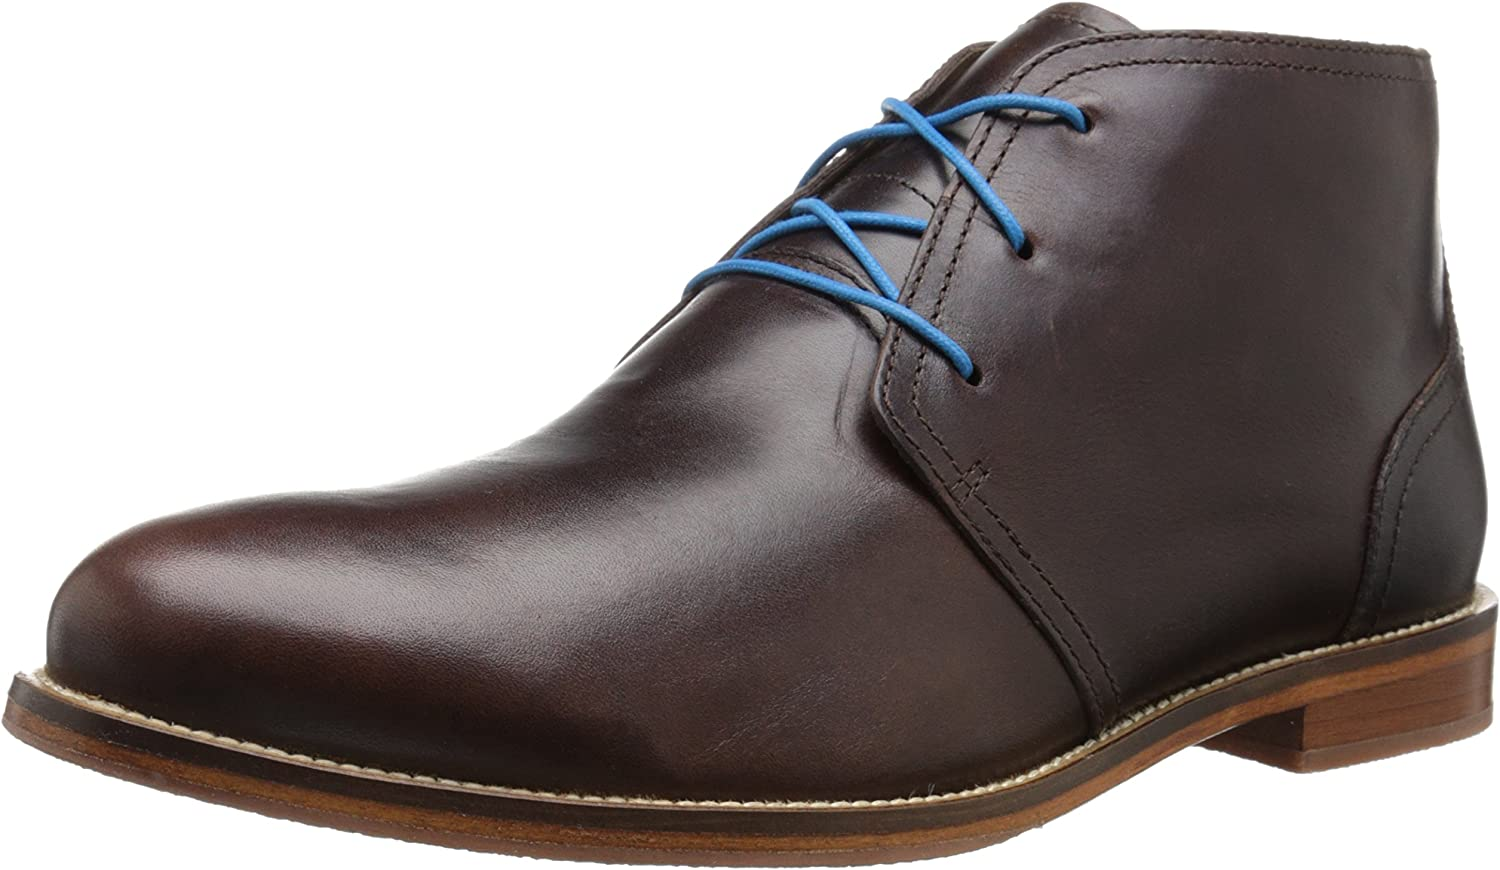 J. skor herr Monarch Plus Chukka Boot Boot Boot  spel